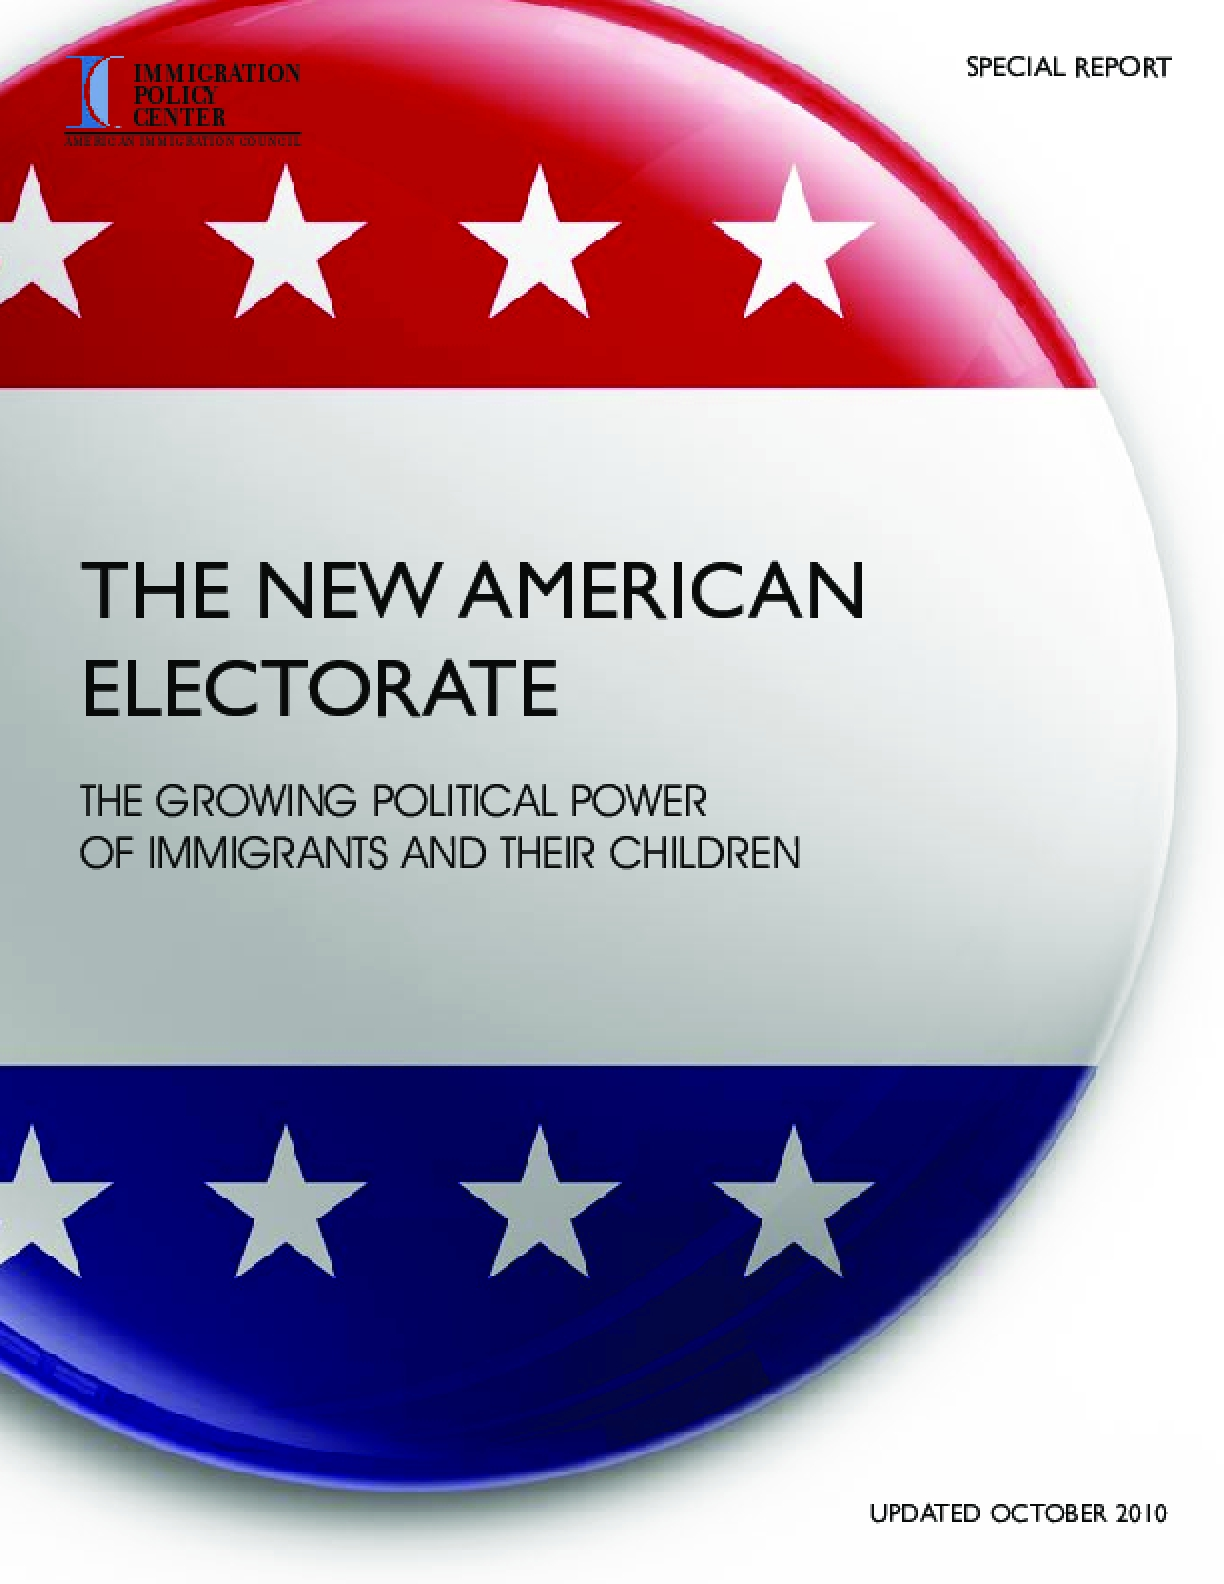 New American Electorate: The Growing Political Power of Immigrants and Their Children (Updated October 2010)